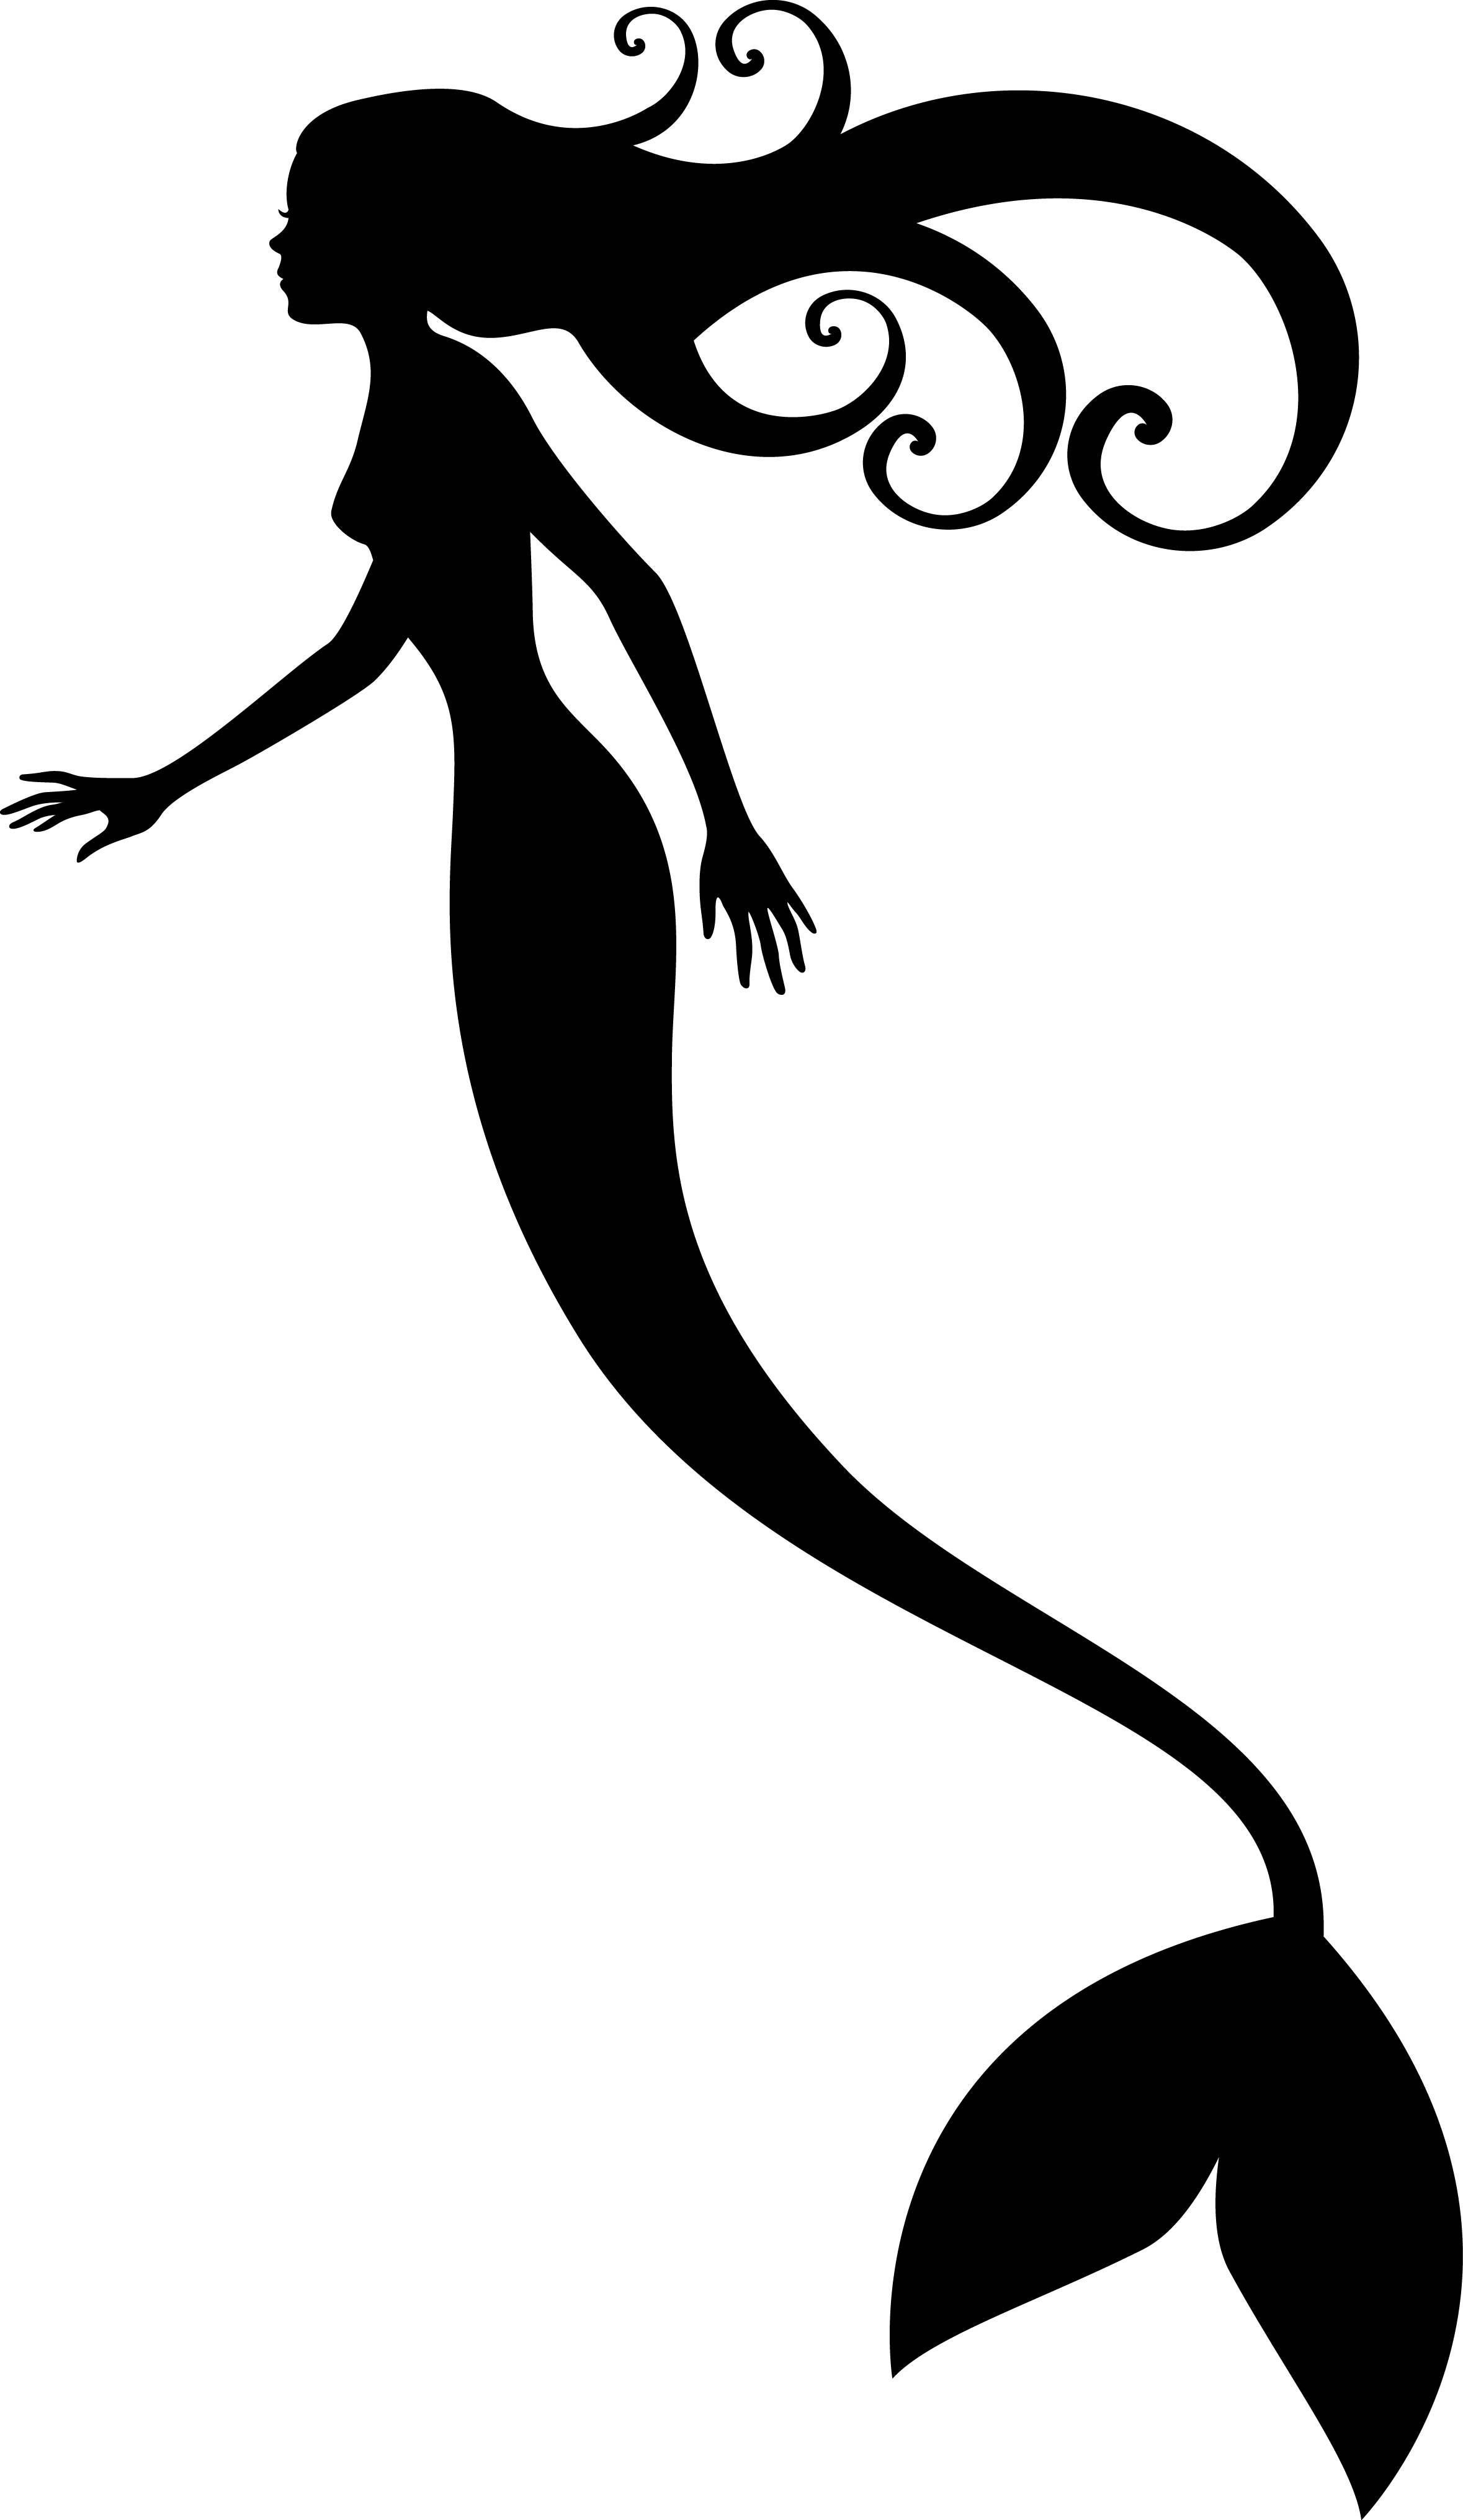 mermaid tail silhouette mermaidhires image